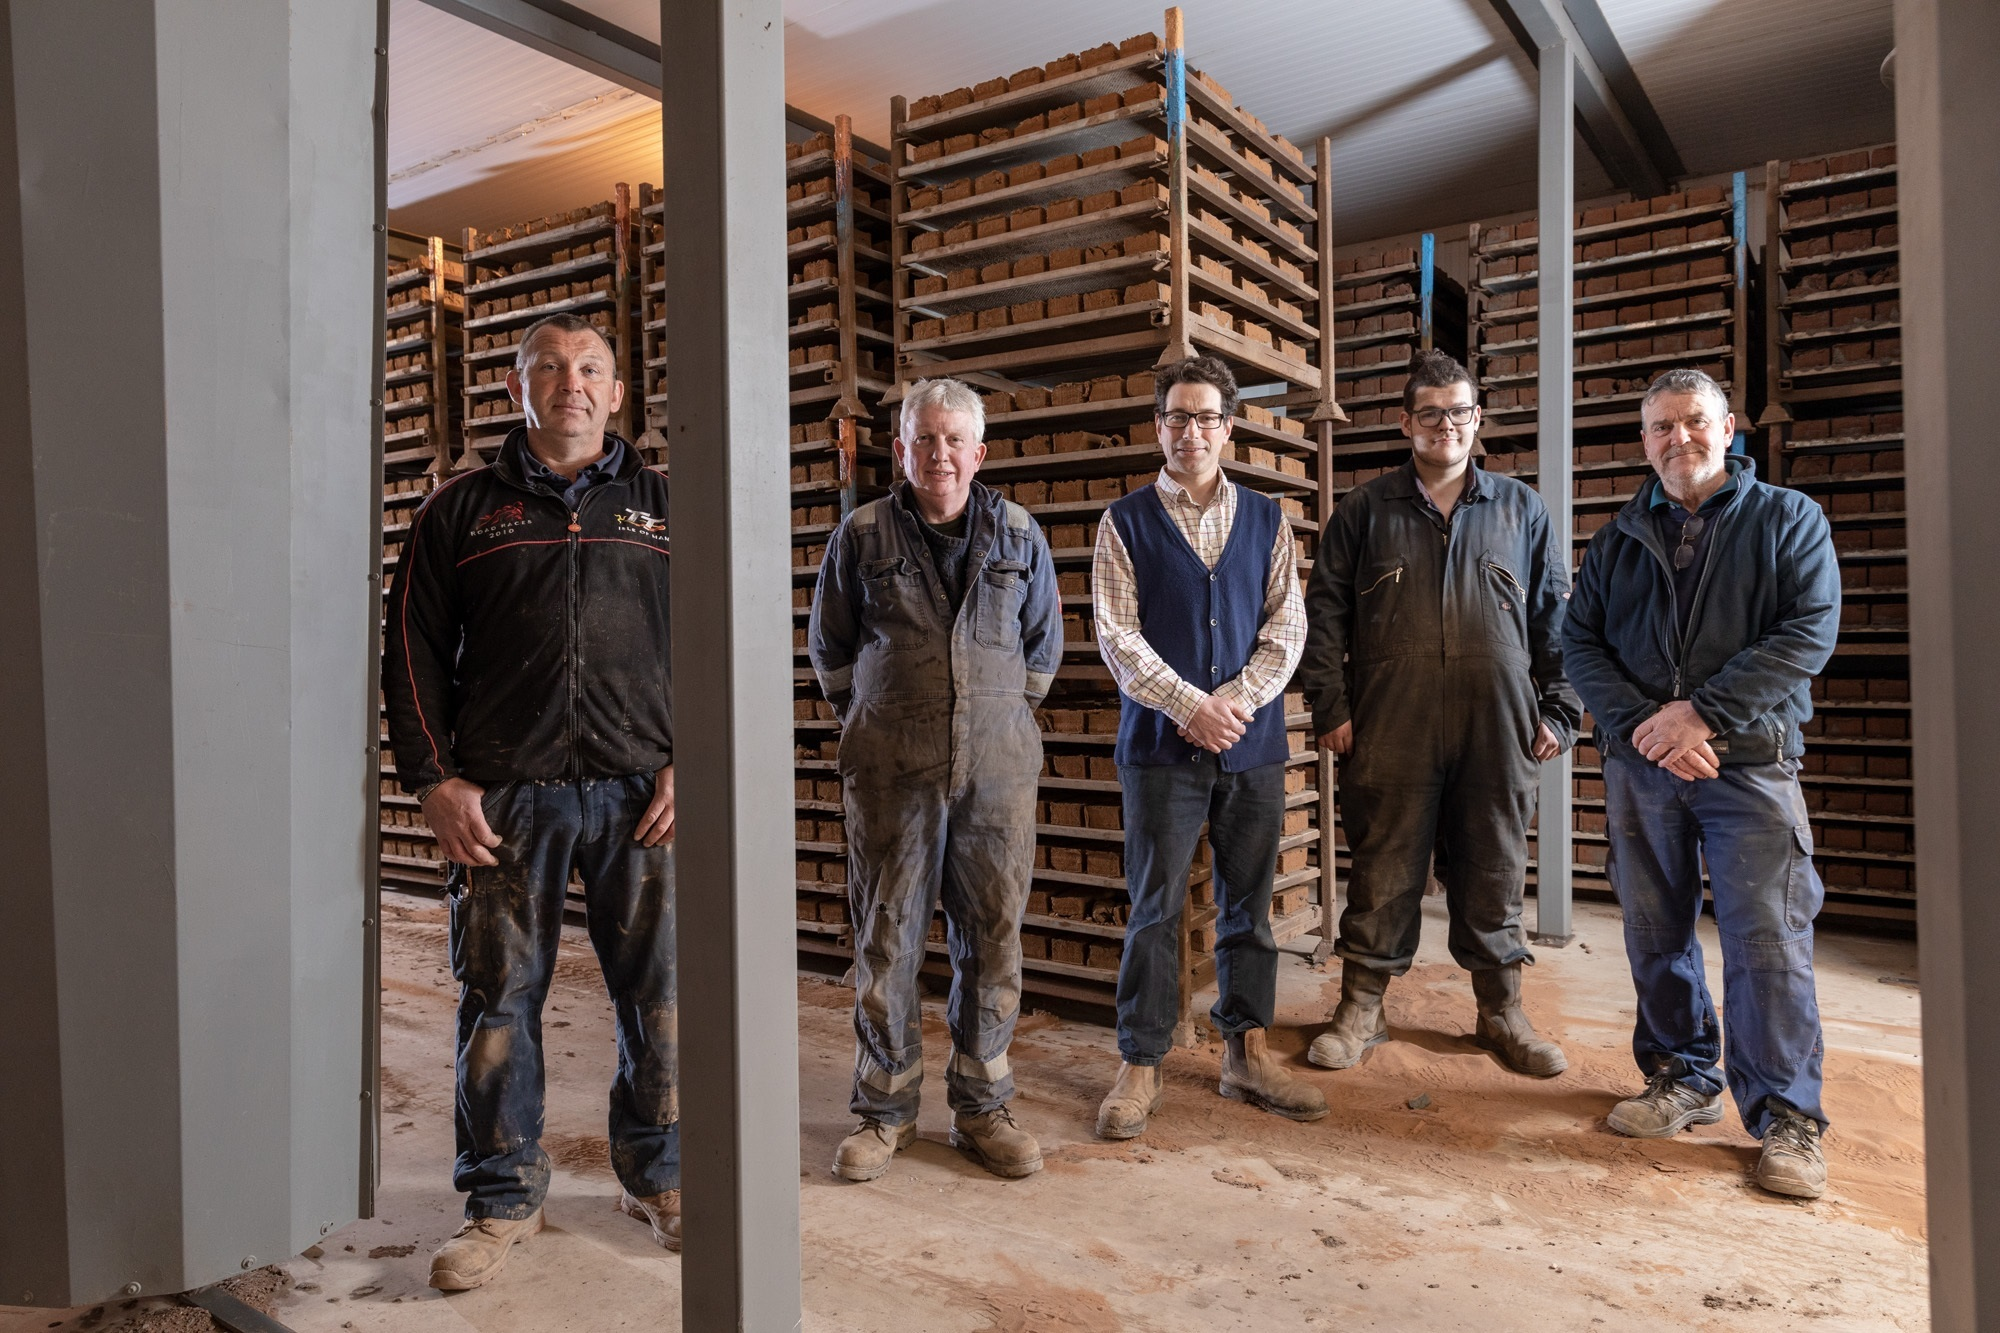 From left, Shaun Richardson; Nick Barker; Guy Armitage; Toby Sanderson; and Steve Pittham in front of the new dryer